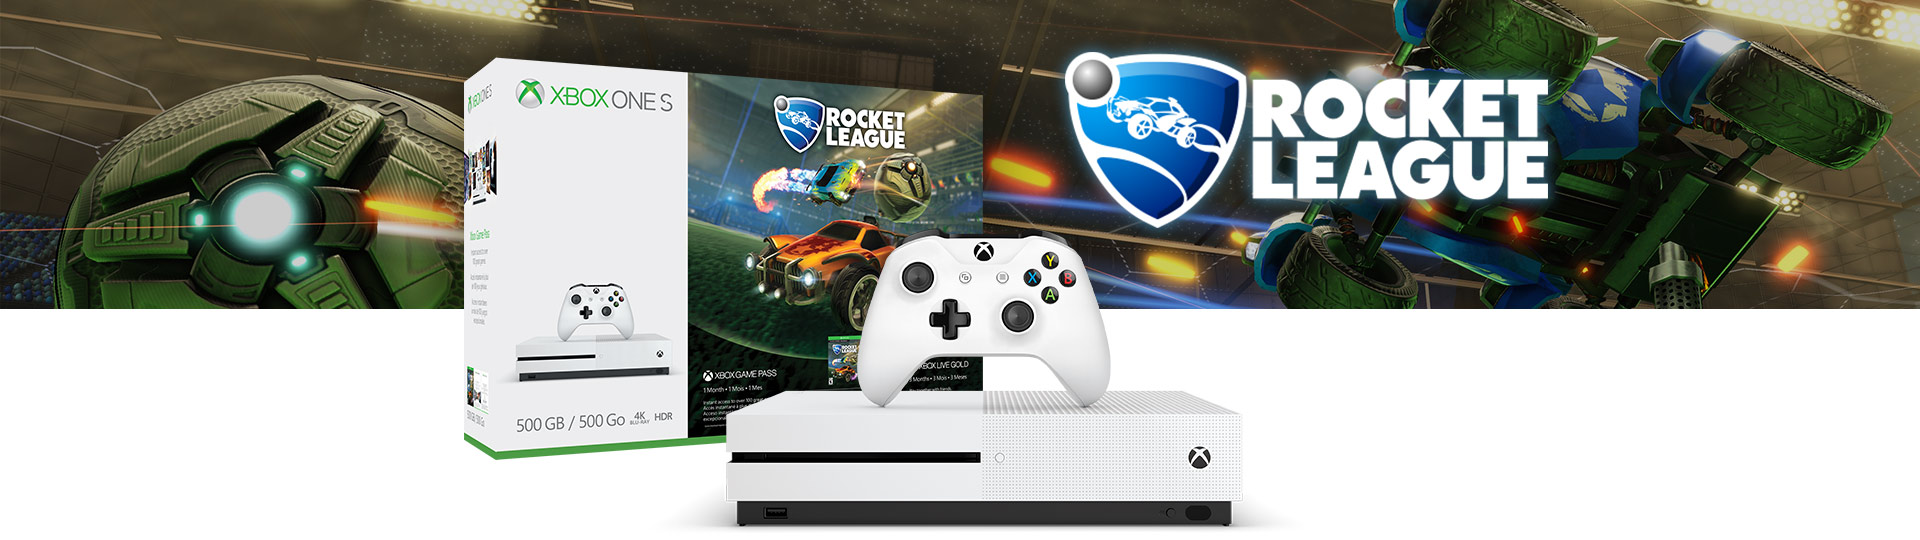 Zestaw Rocket League Blast-Off z konsolą Xbox One S (500 GB)